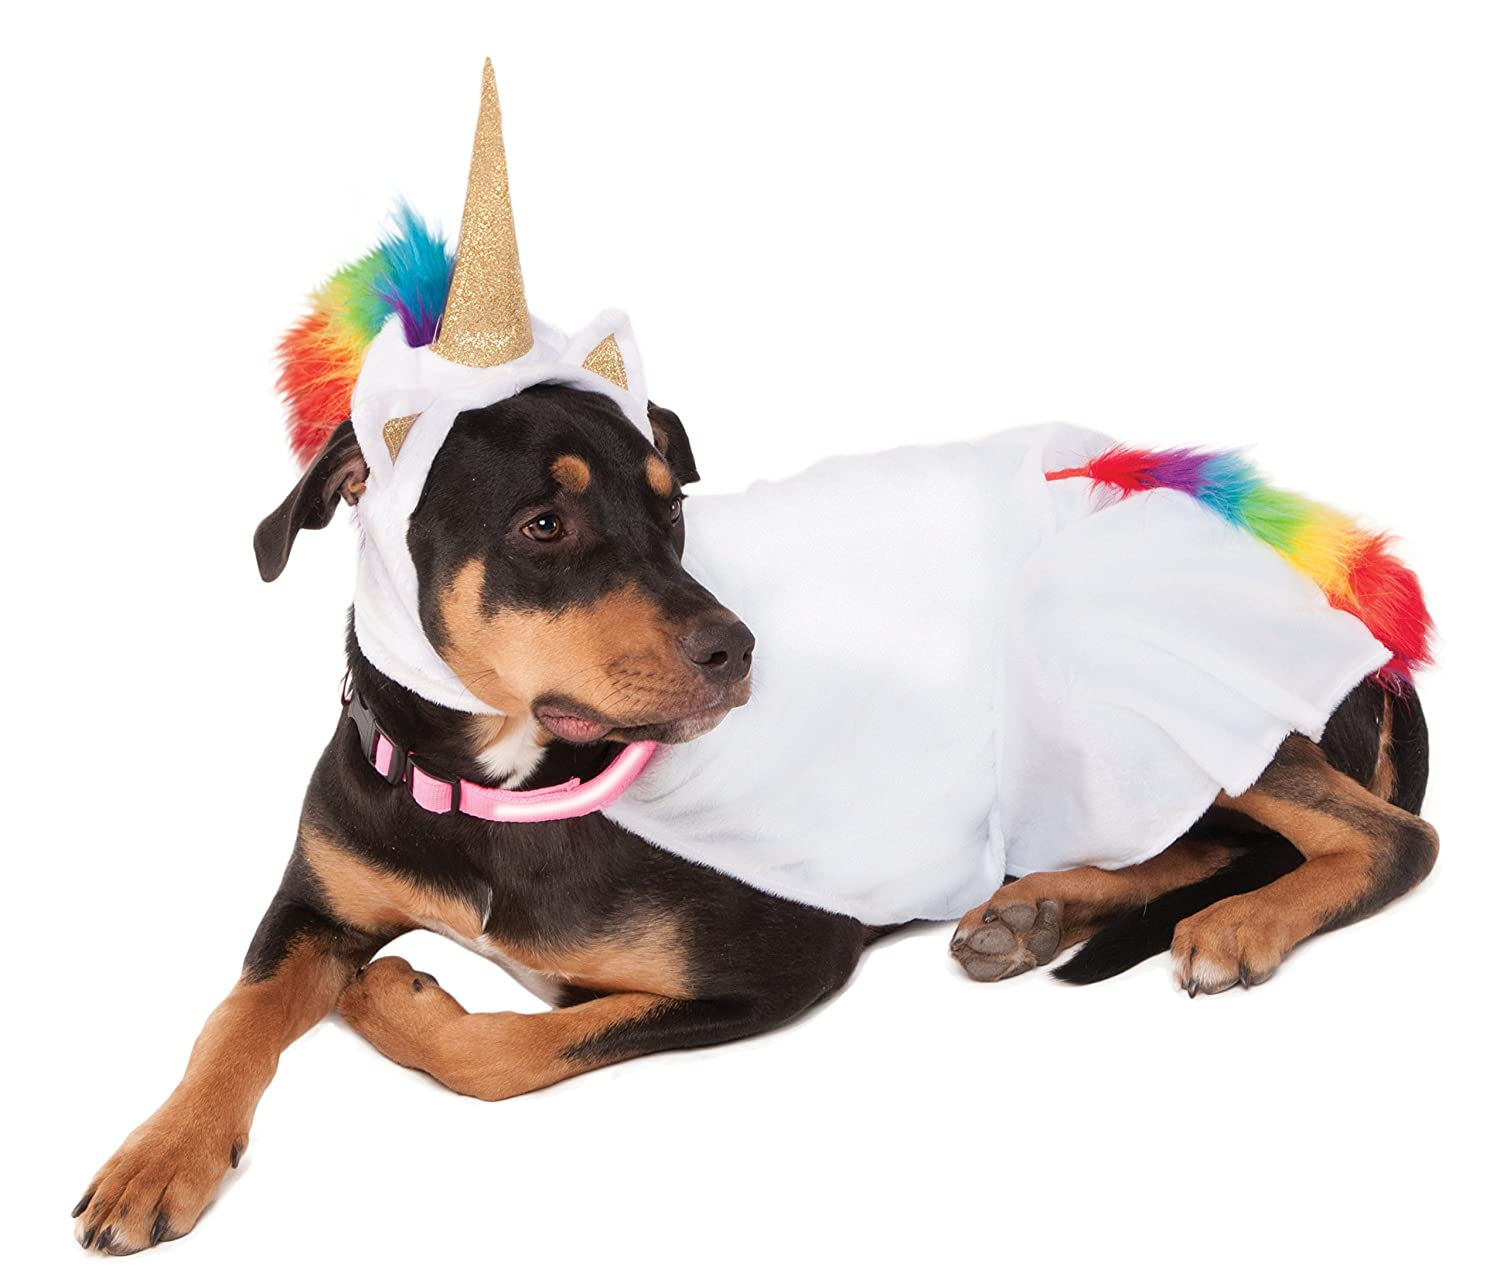 Rubies Costume Co Unicorn Cape with Hood and Light-Up Collar for Pets, Medium 580088 M